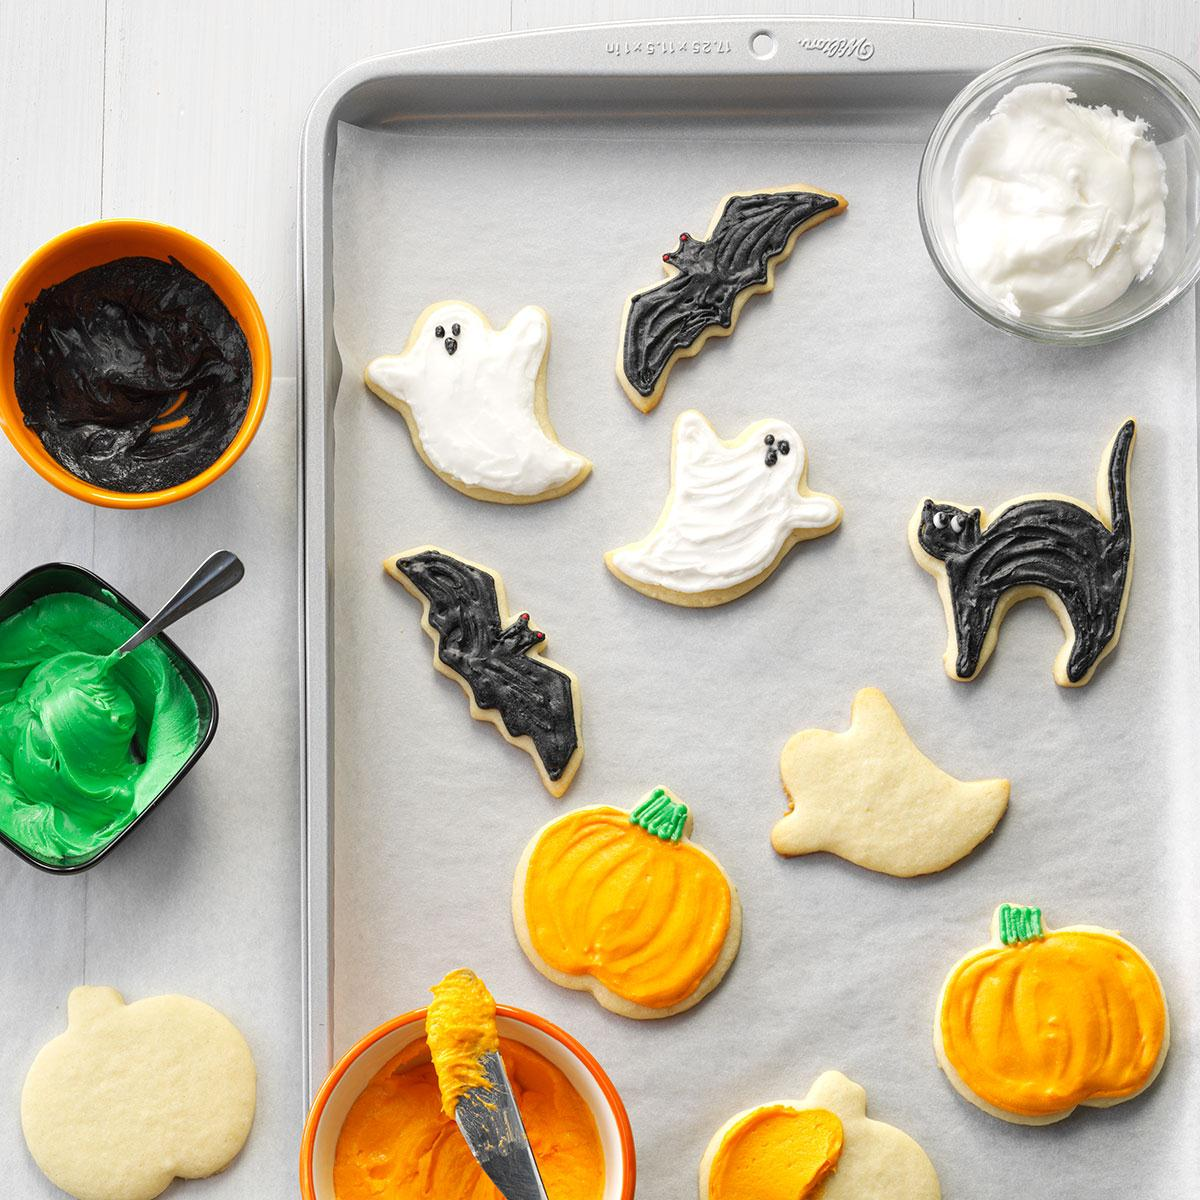 How Do You Make Halloween Cookies.Halloween Party Cutout Cookies Recipe How To Make It Taste Of Home